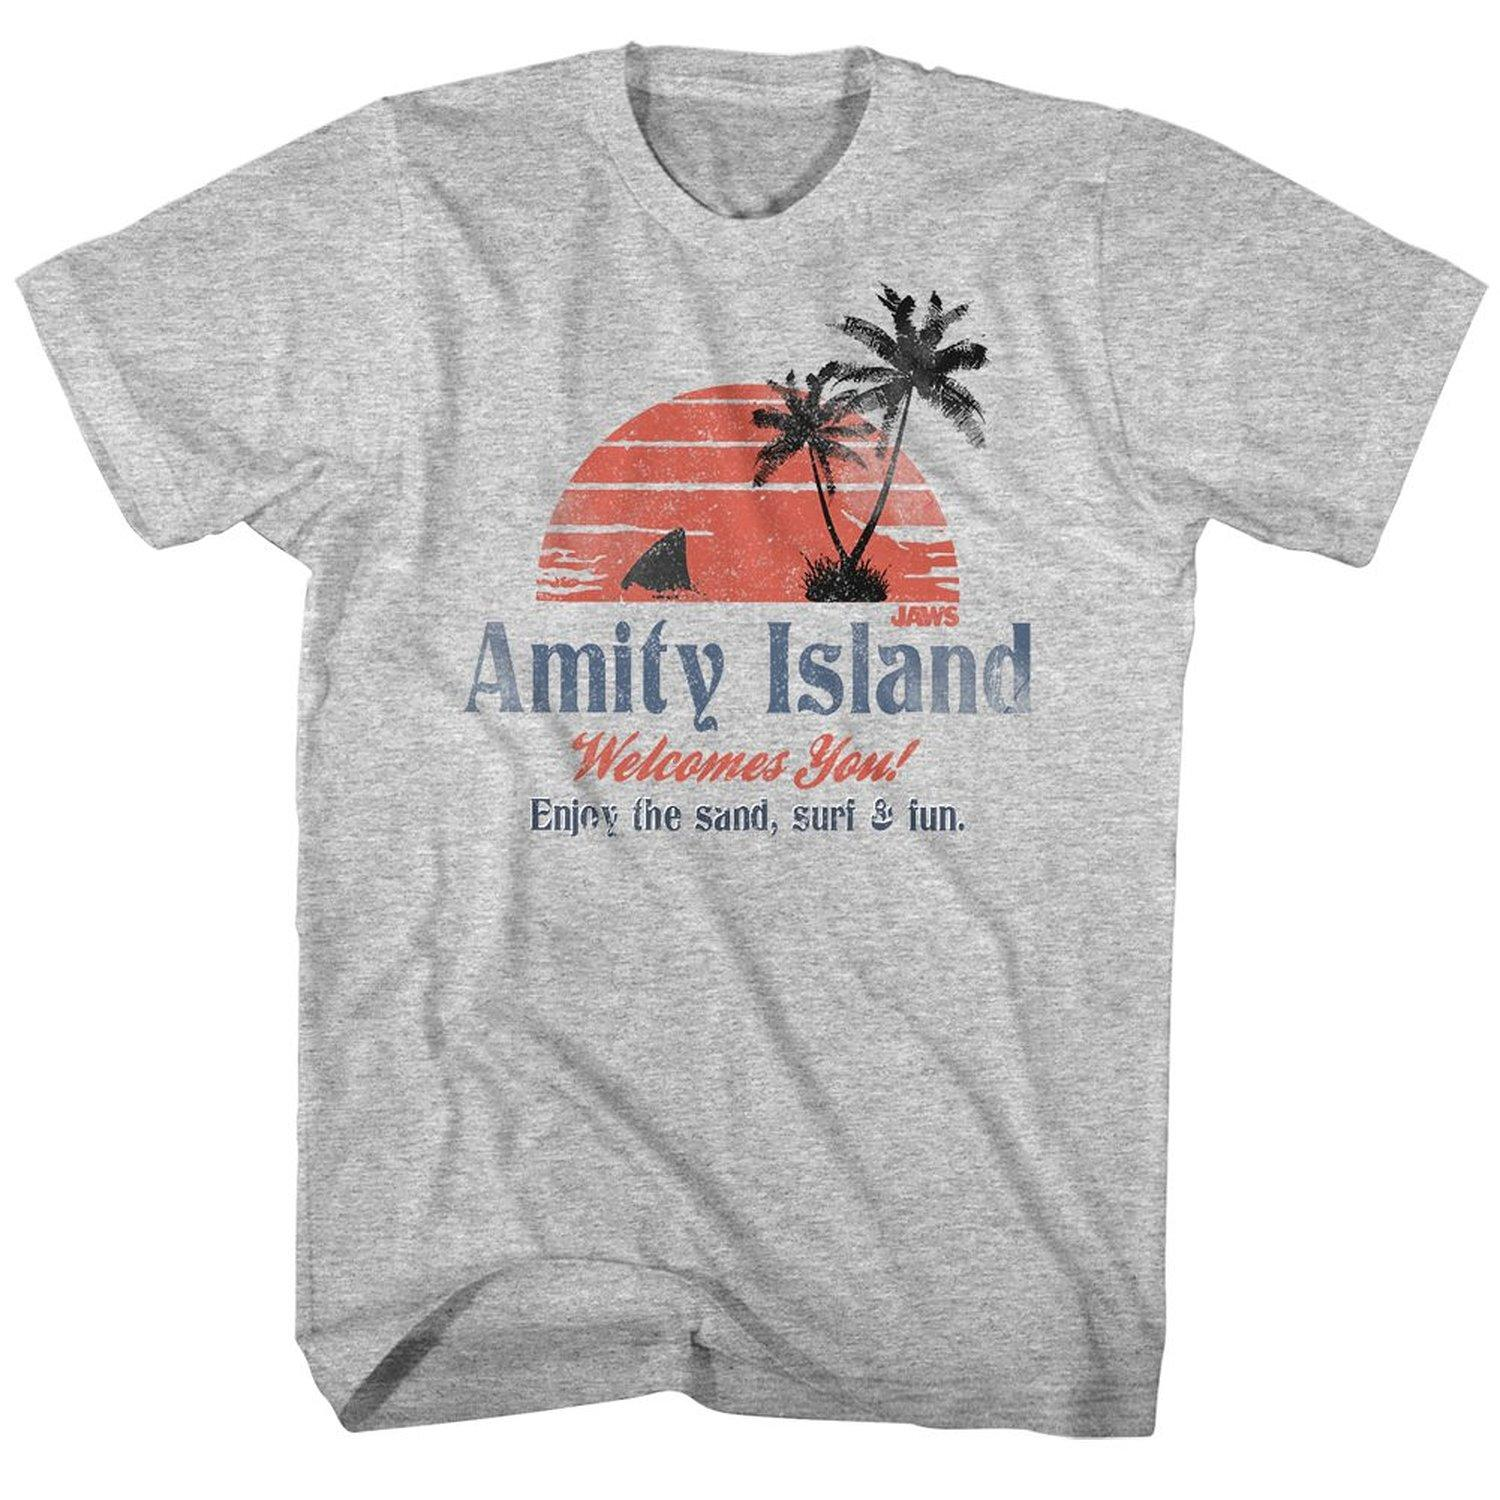 Fashion Cotton T Shirts American Classics Jaws Amity Island T Shirt Design  Short Sleeve Tee Shirt Customised T Shirts Ladies T Shirts From Bstdhgate 3274d5146